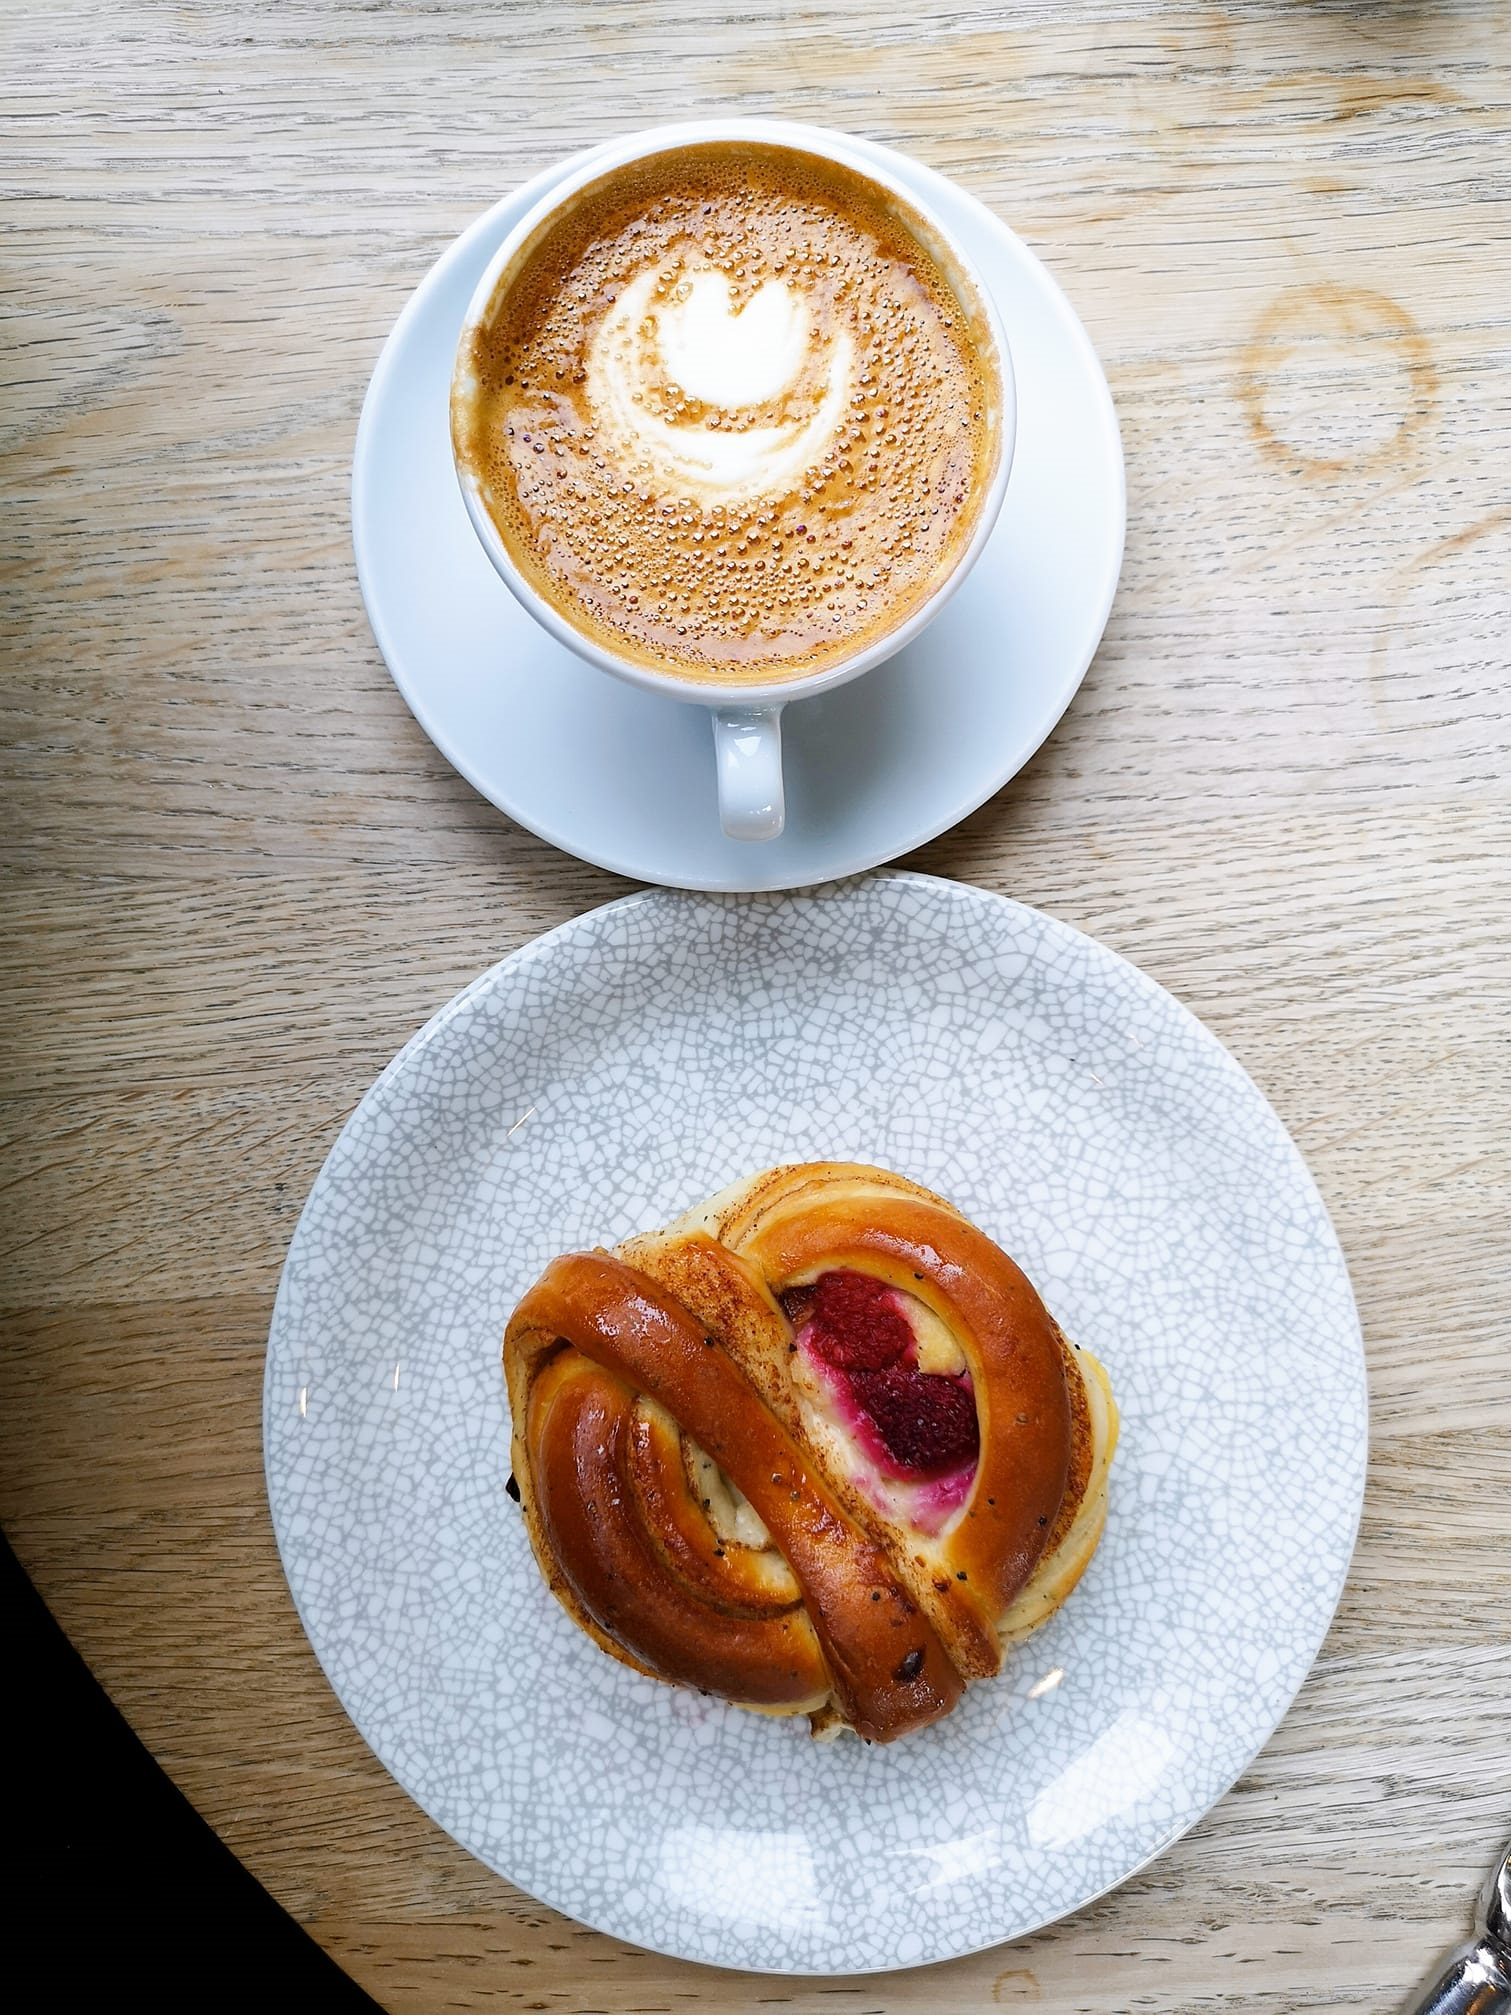 Soderberg - A few dotted around Edinburgh providing superb Swedish pastries and delicious omelettes.www.soderberg.uk